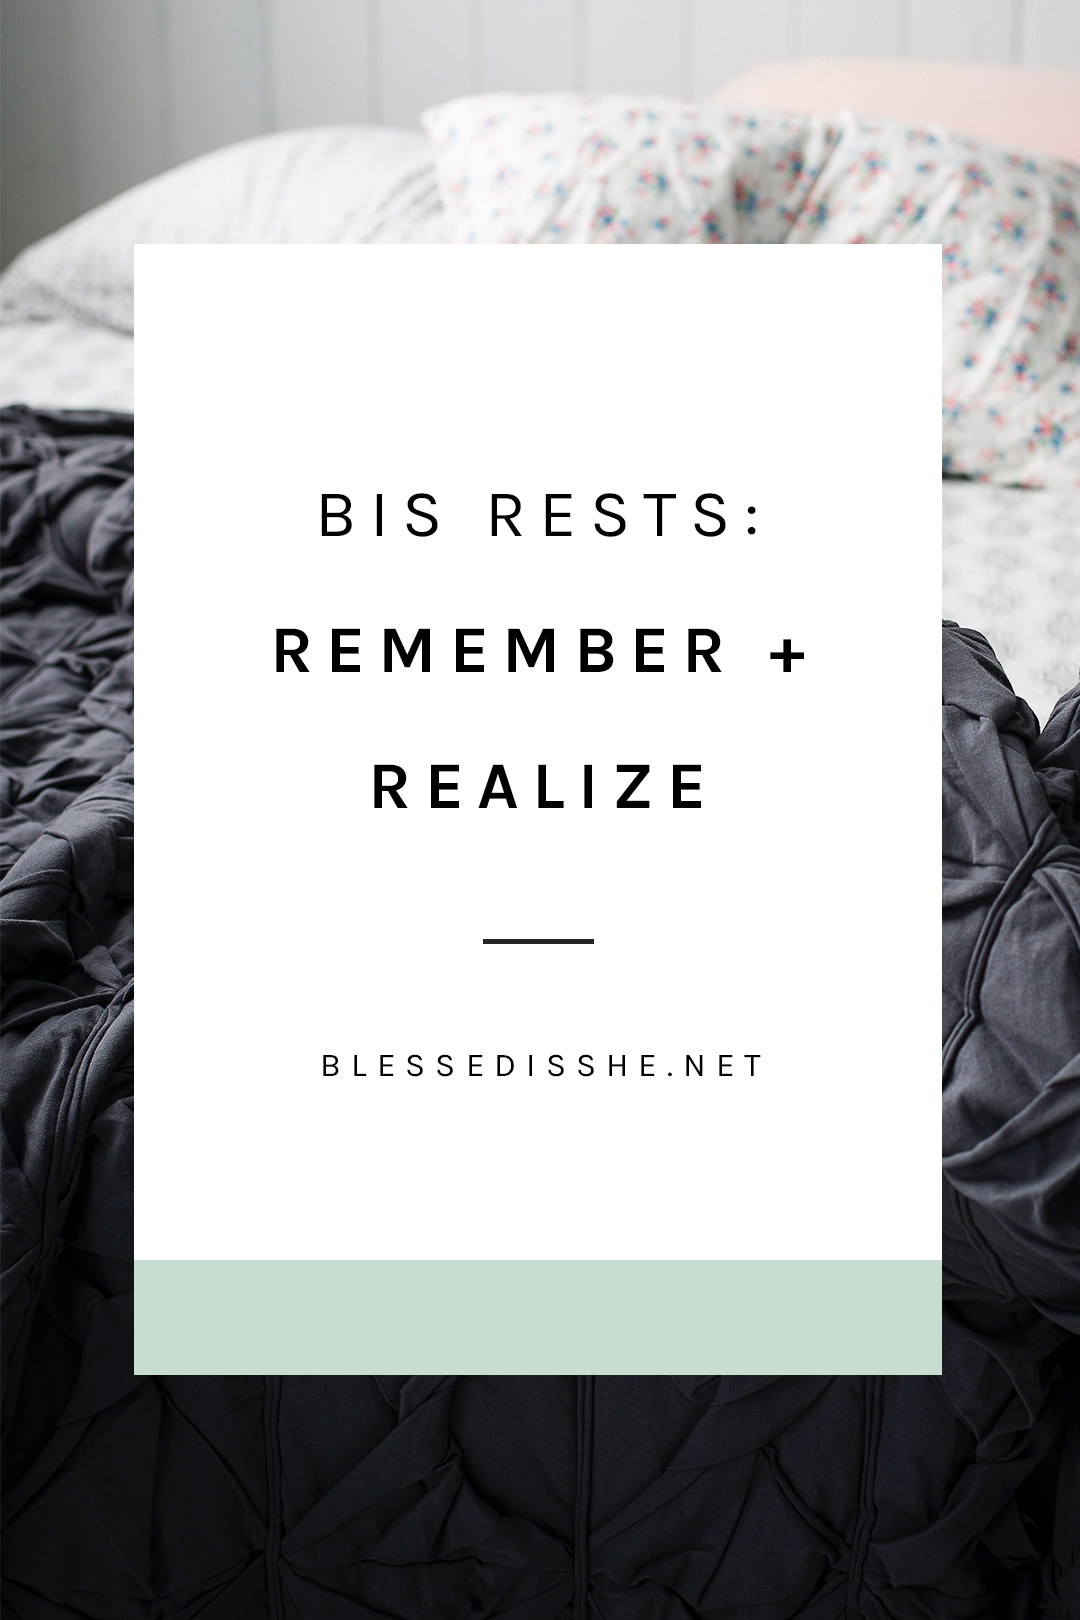 bis rests remember + realize sunday reflections